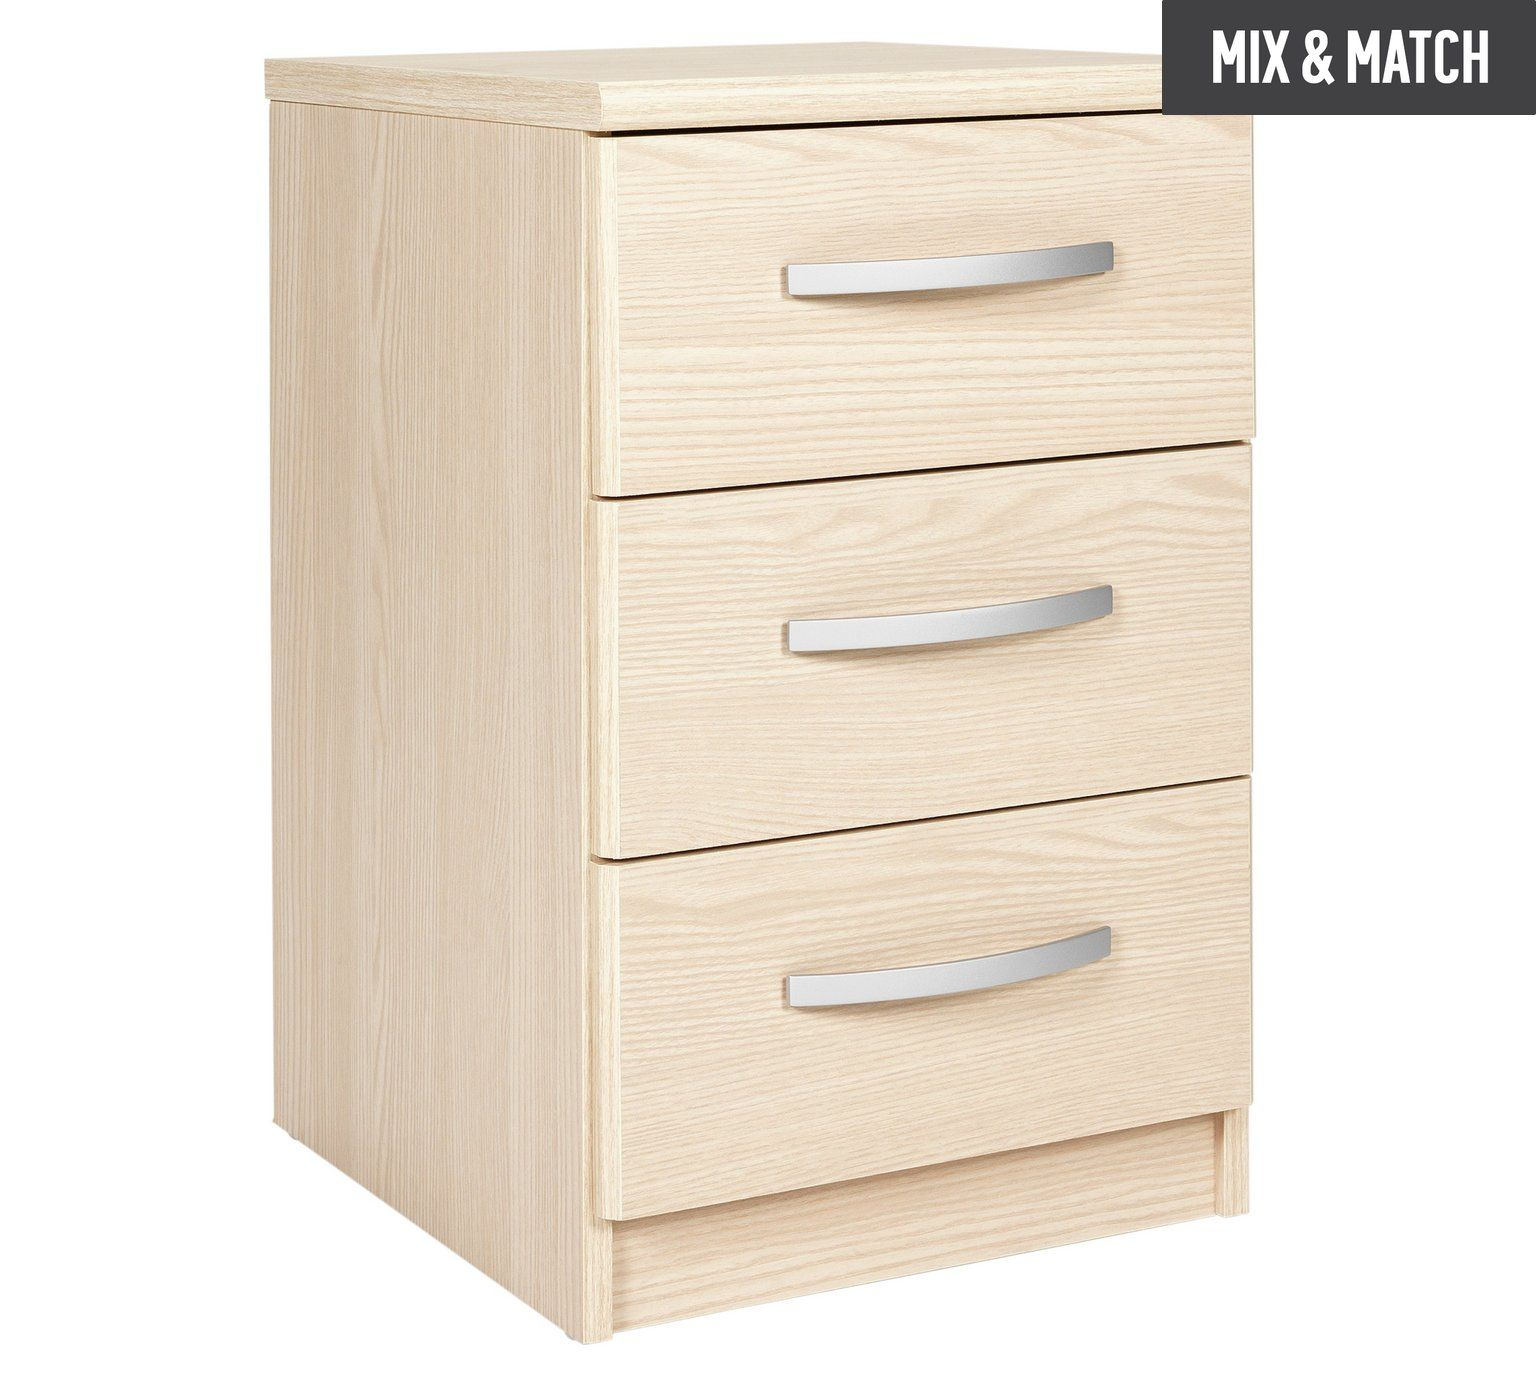 argos bedroom furniture. Buy Collection New Hallingford Bedside Chest - Light Oak Effect At Argos .co.uk Bedroom Furniture E